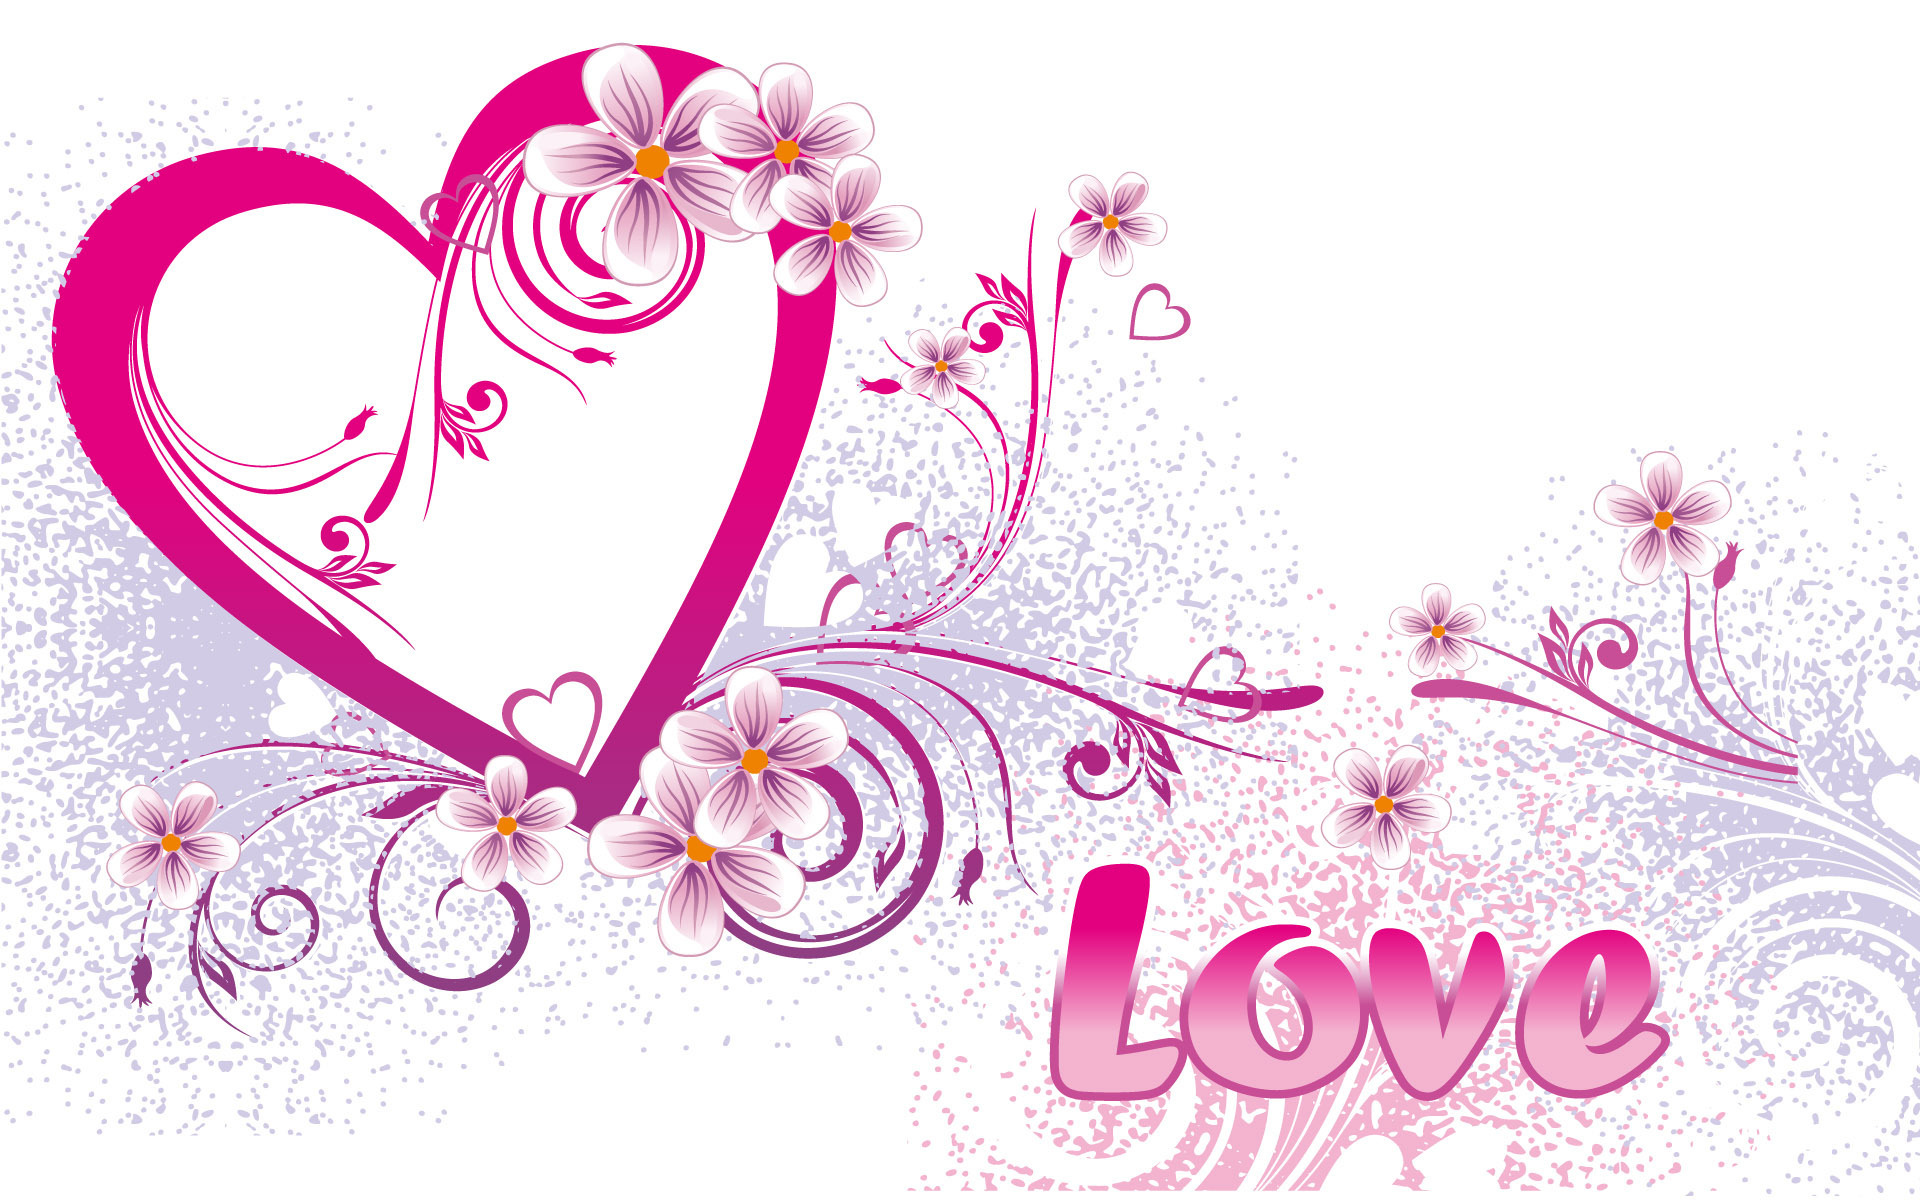 Love Wallpapers Only : Love wallpaper - Love Wallpaper (4187632) - Fanpop